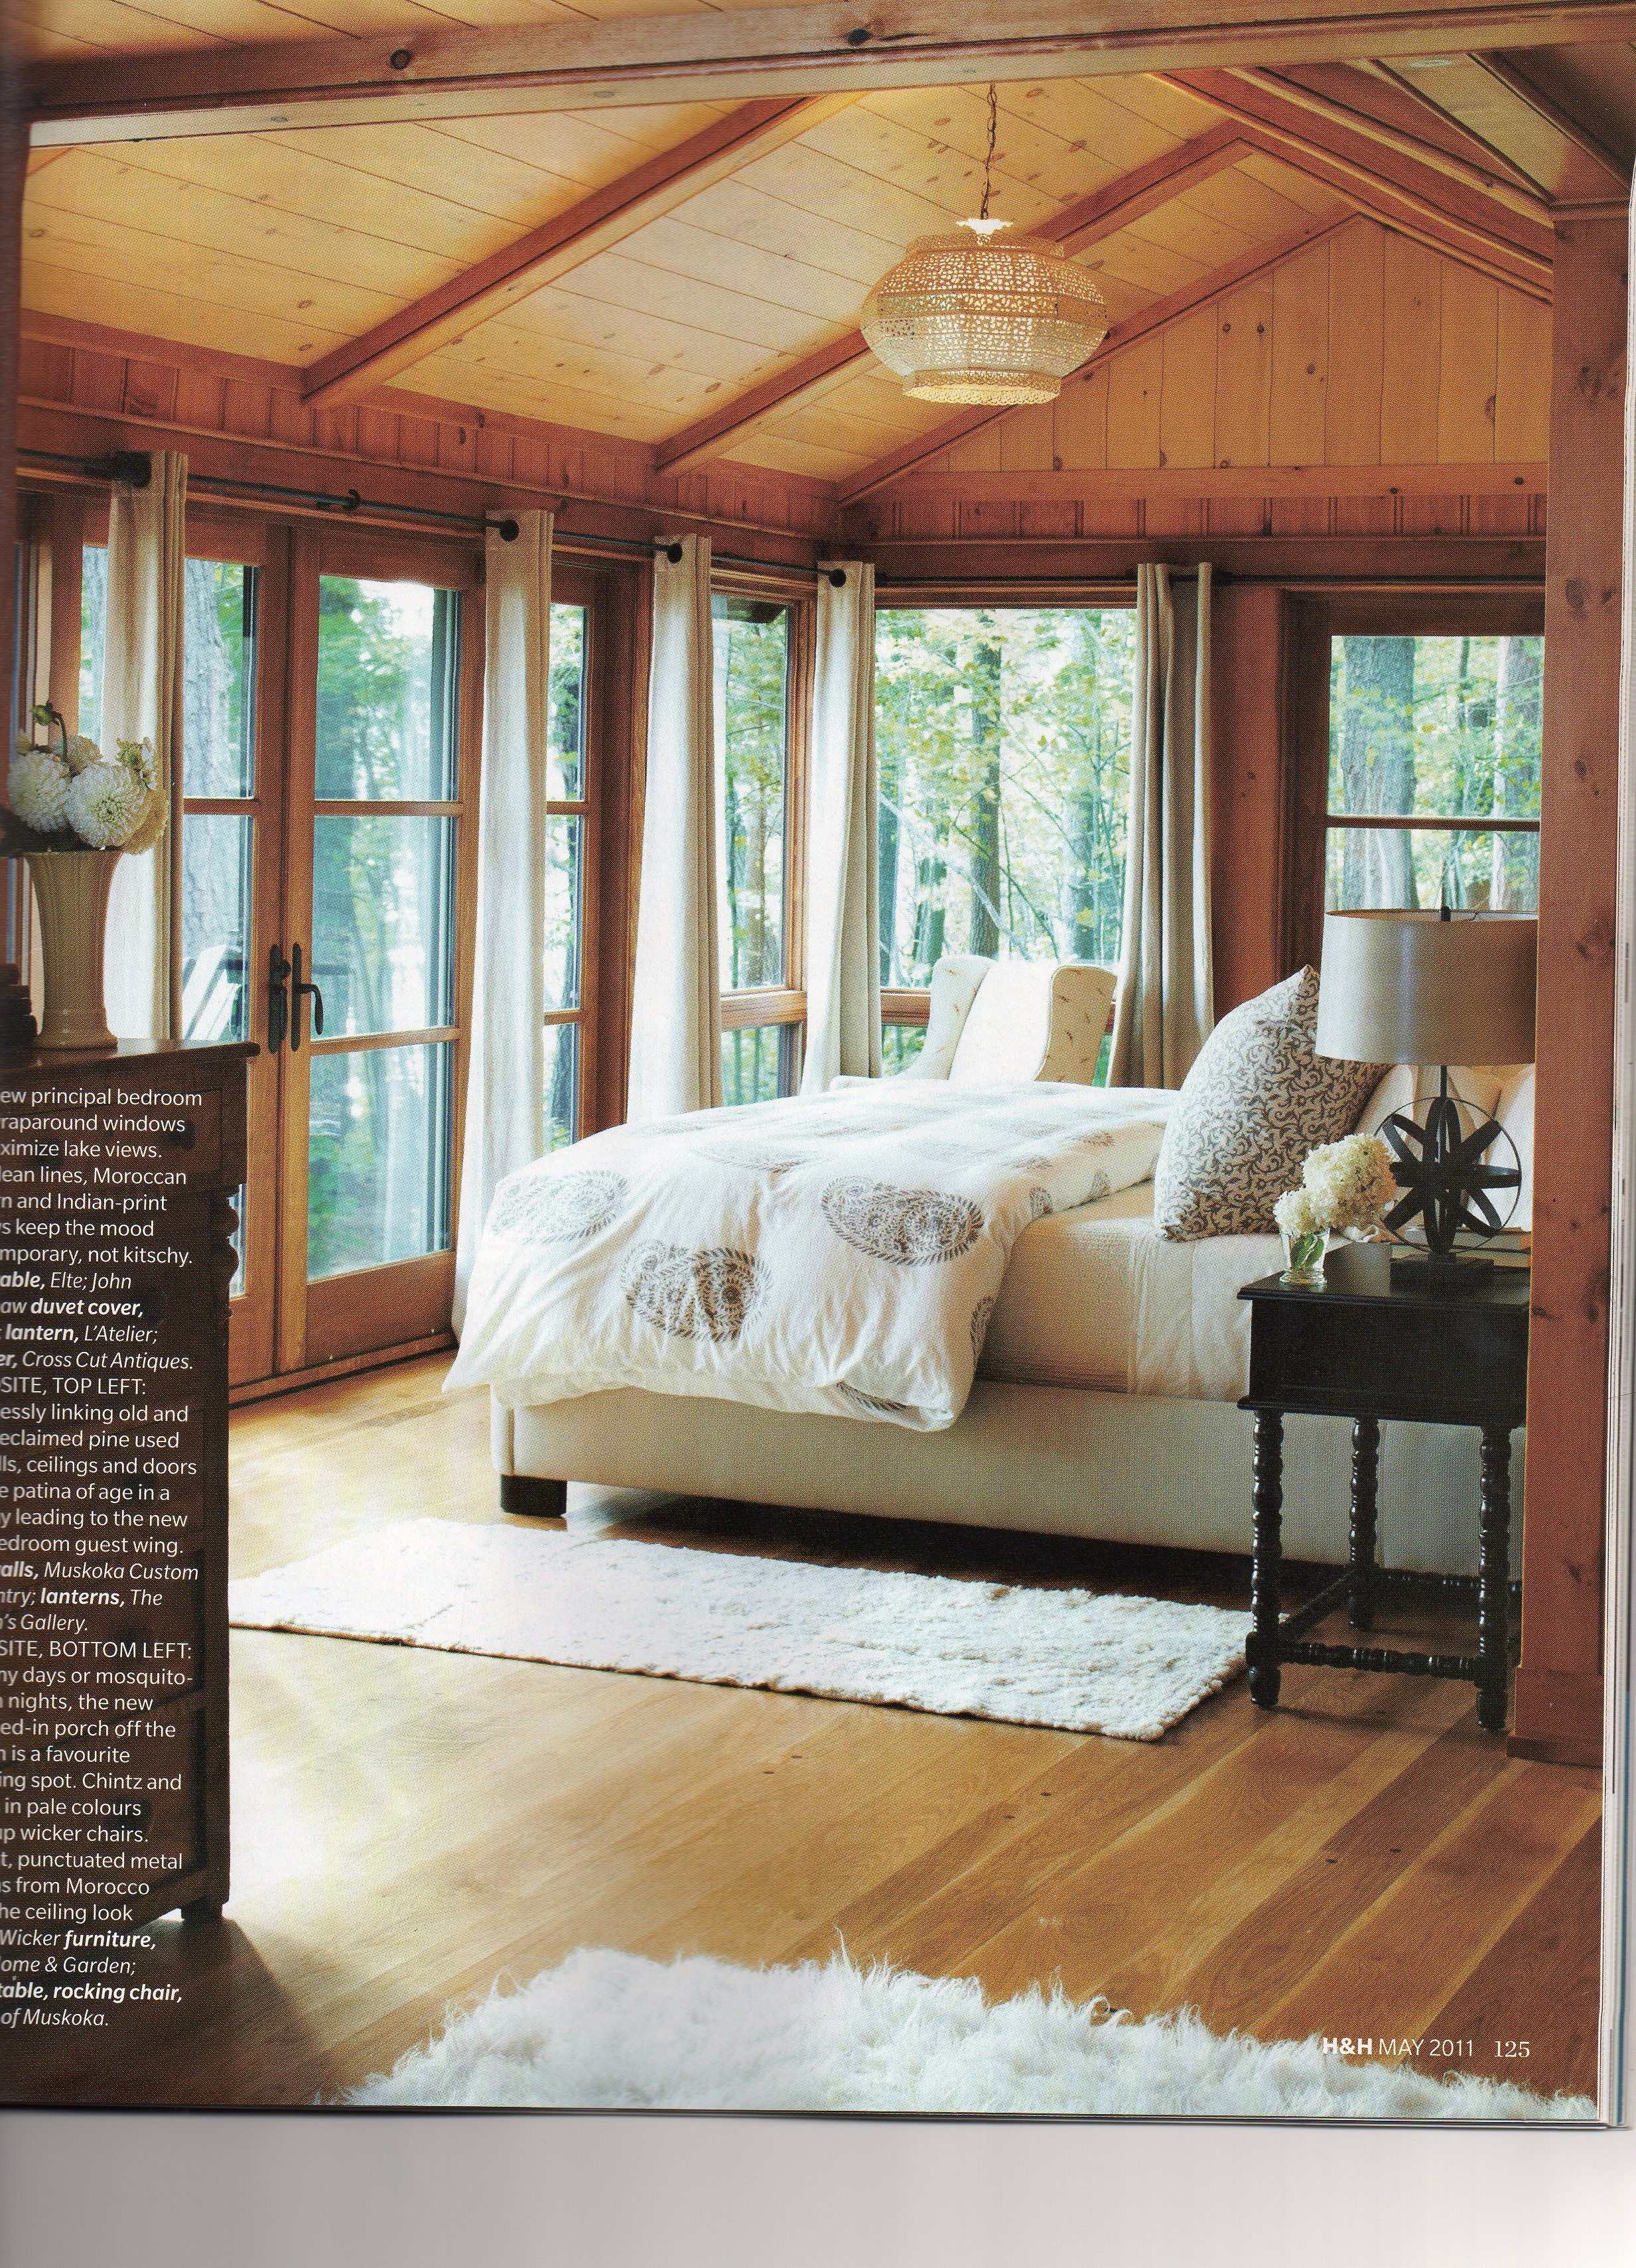 my kinda room with a view! Home, Lodge bedroom, Home bedroom